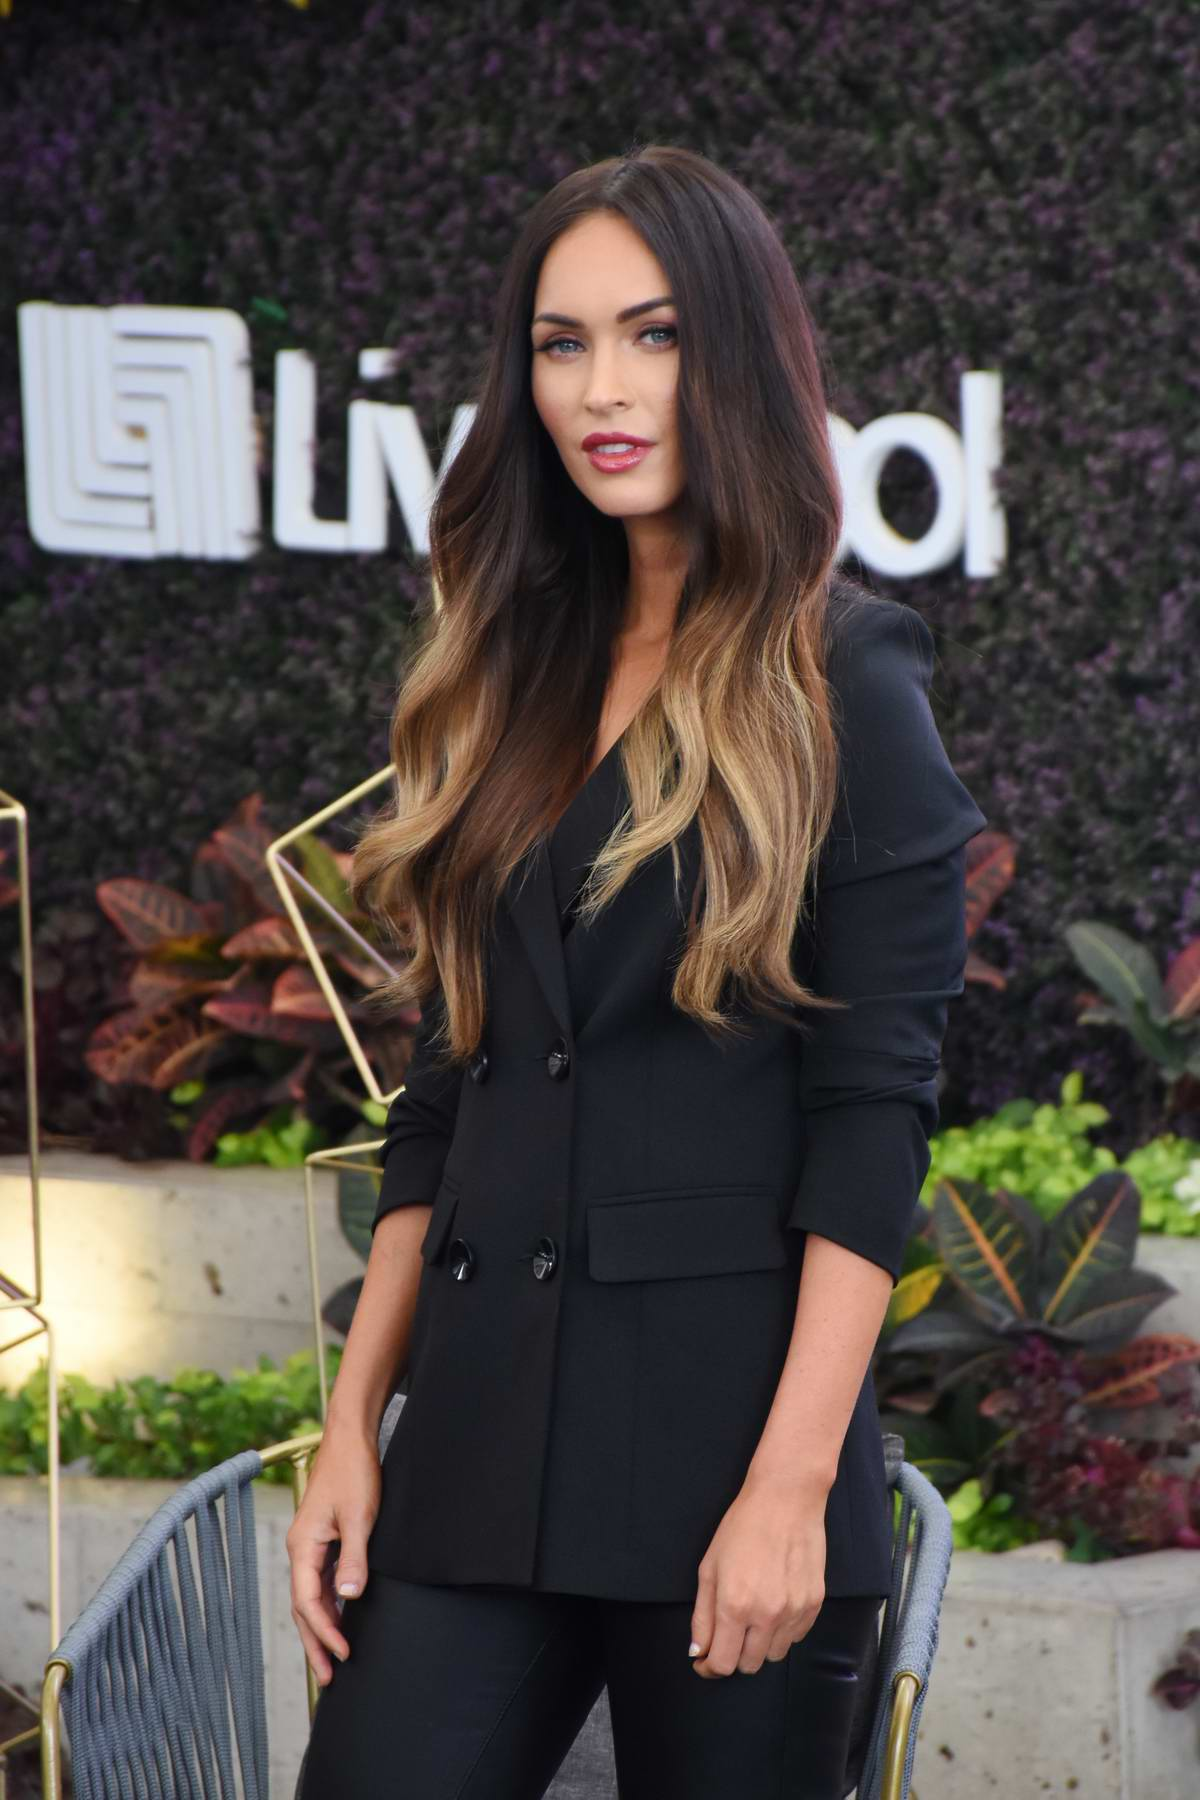 Megan Fox at the Liverpool Fashion Fest in Mexico City, Mexico